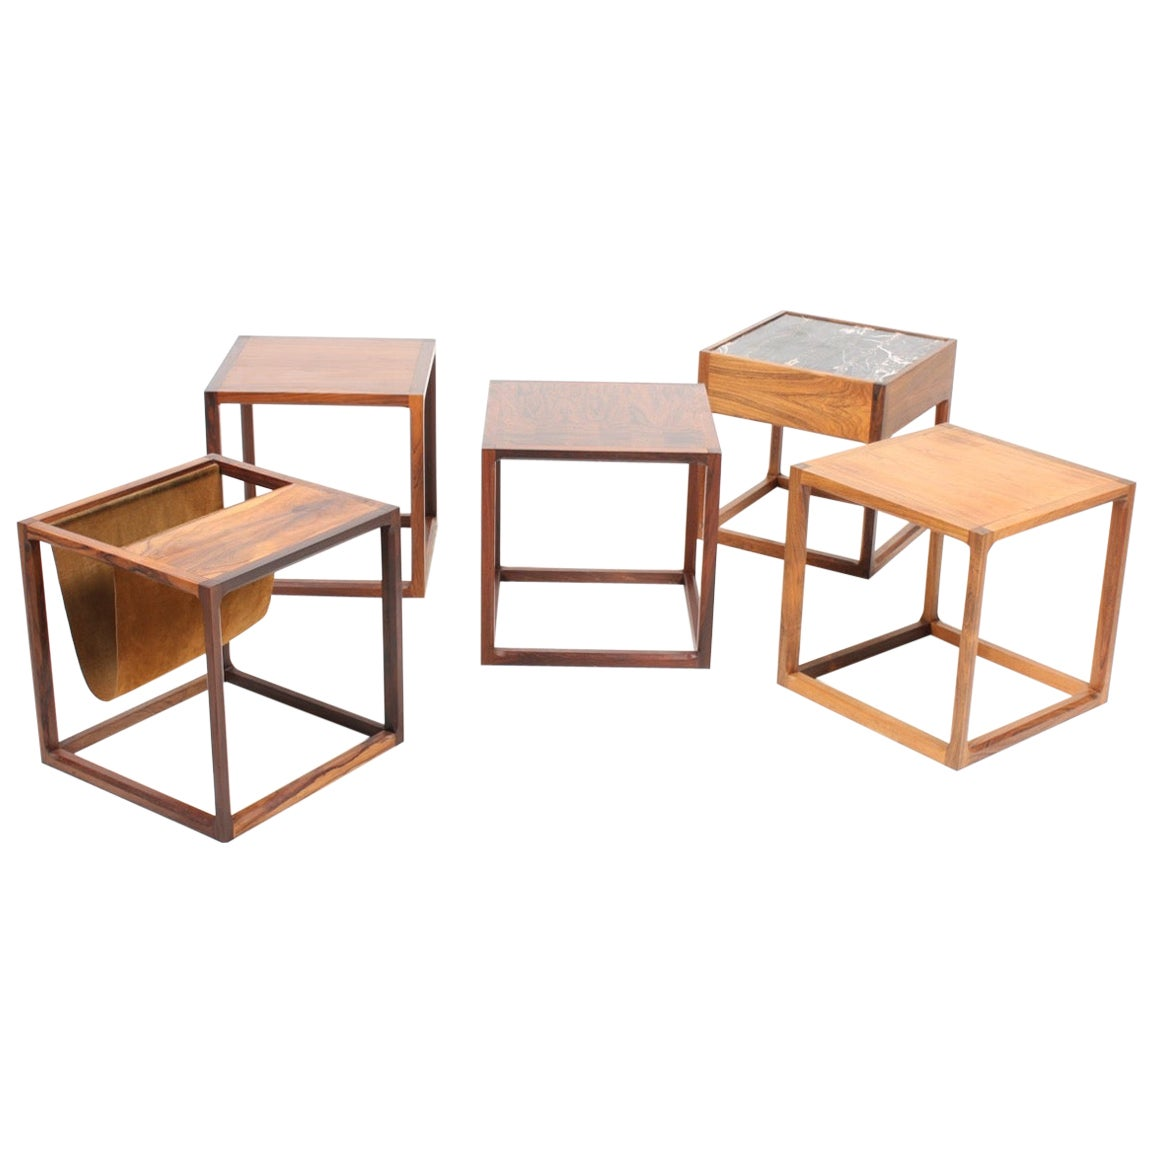 Set of Five Cube Side Tables in Rosewood Designed by Aksel Kjærsgaard, 1960s